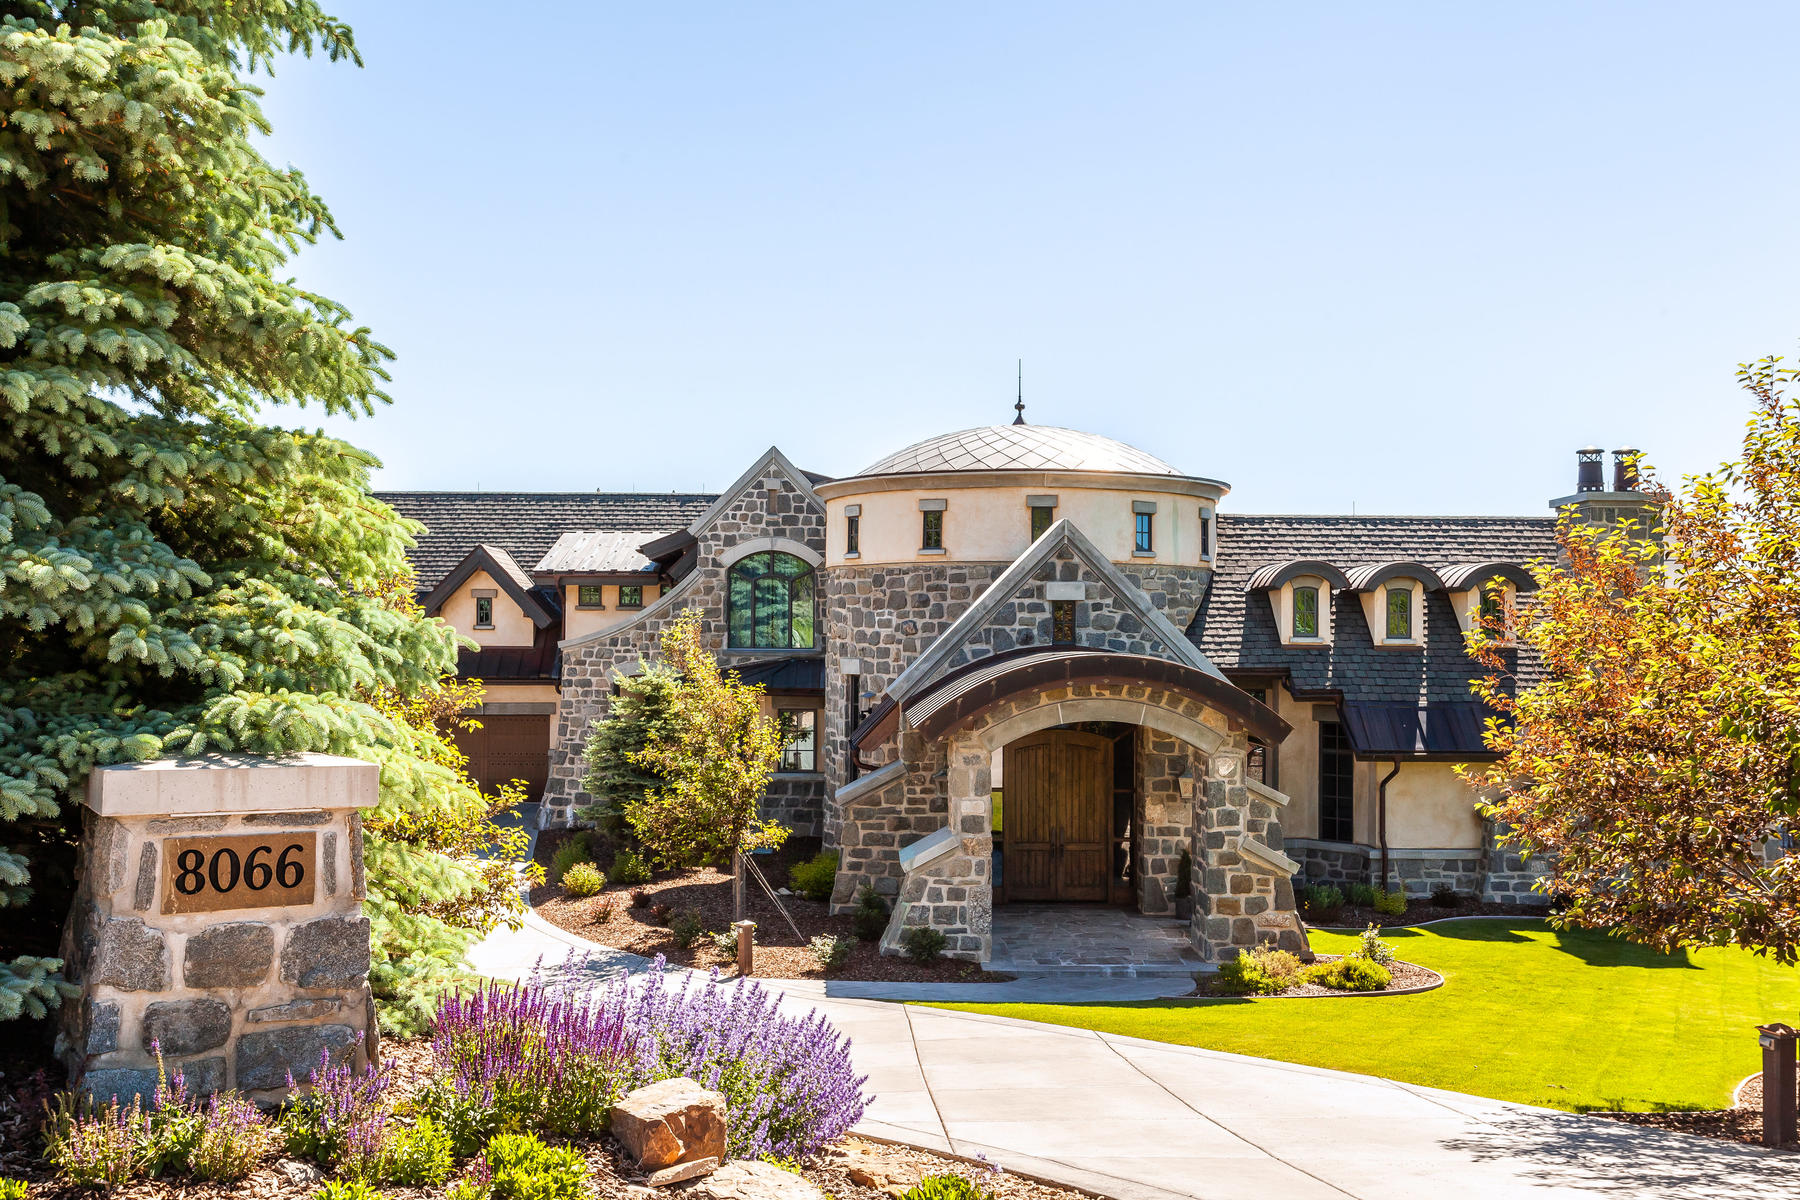 Single Family Homes for Active at A Michael Upwall Old World Legacy Masterpiece 8066 N Red Fox Ct Park City, Utah 84098 United States